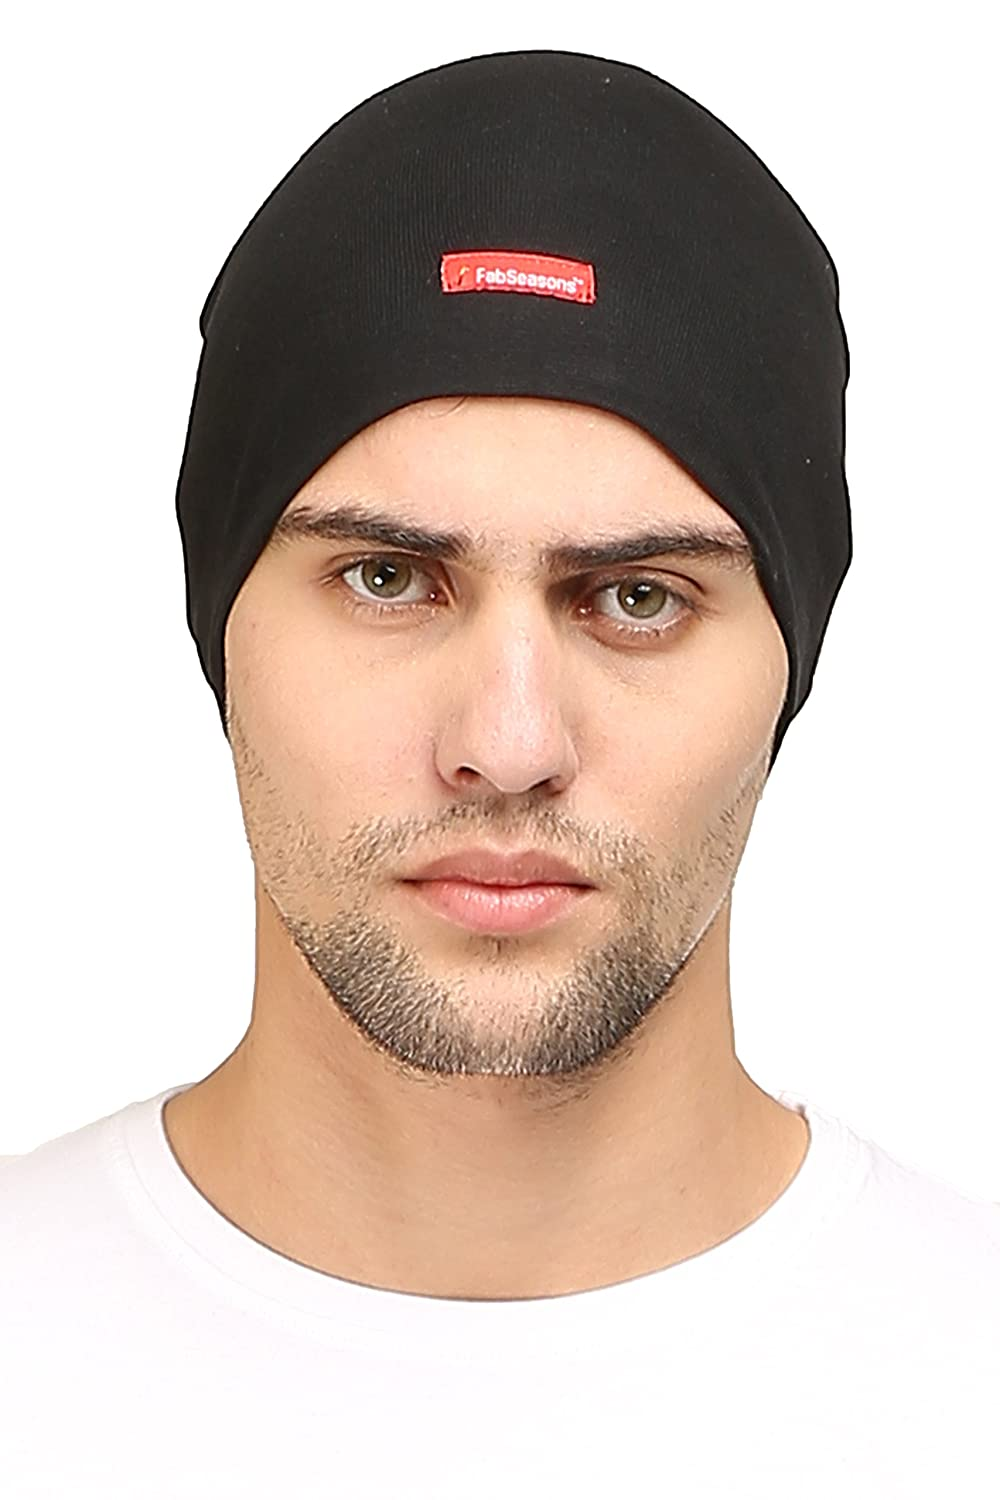 b8762ff46f6 Buy FabSeasons Cotton Skull Cap (Black) Online at Low Prices in India -  Amazon.in